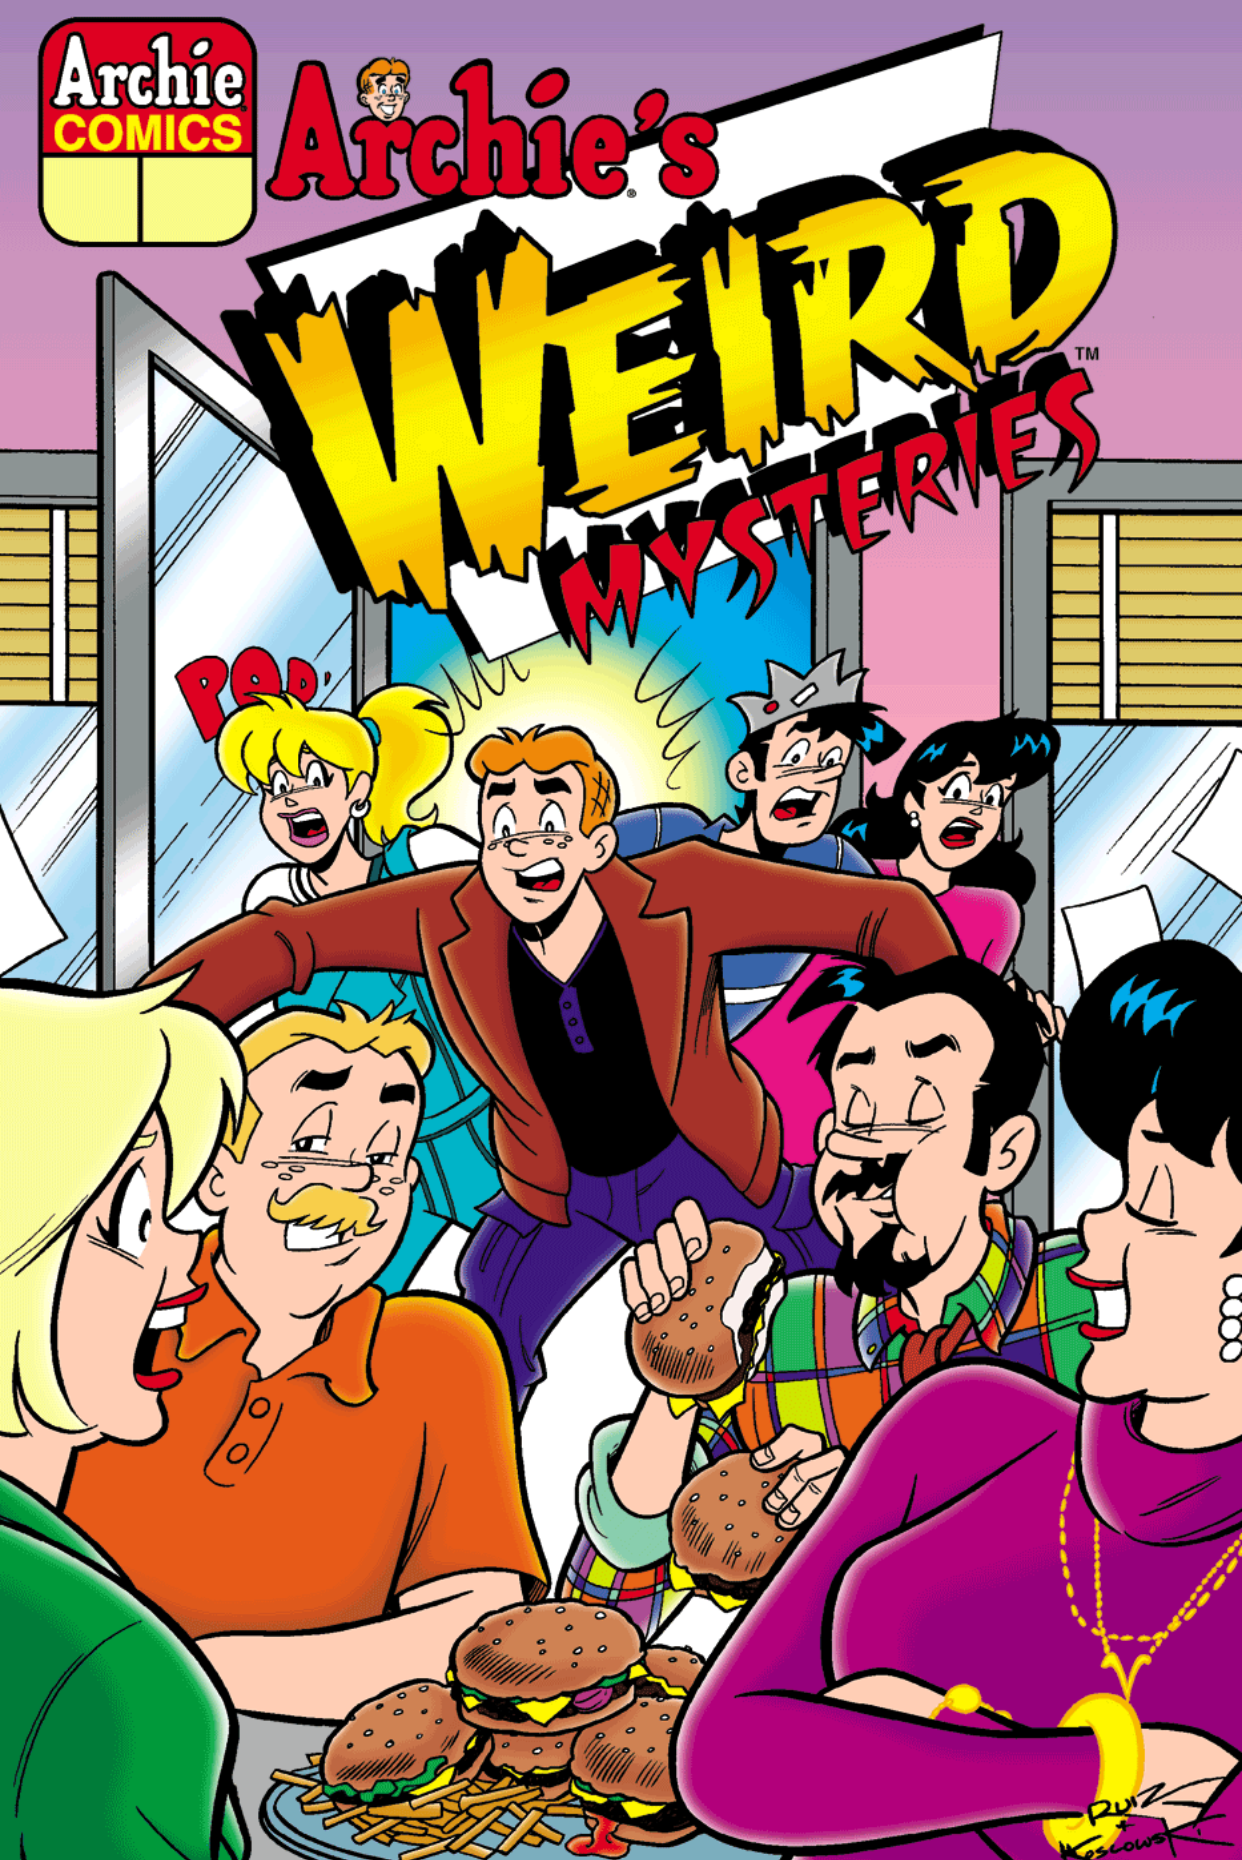 Read online Archie's Weird Mysteries comic -  Issue #5 - 1